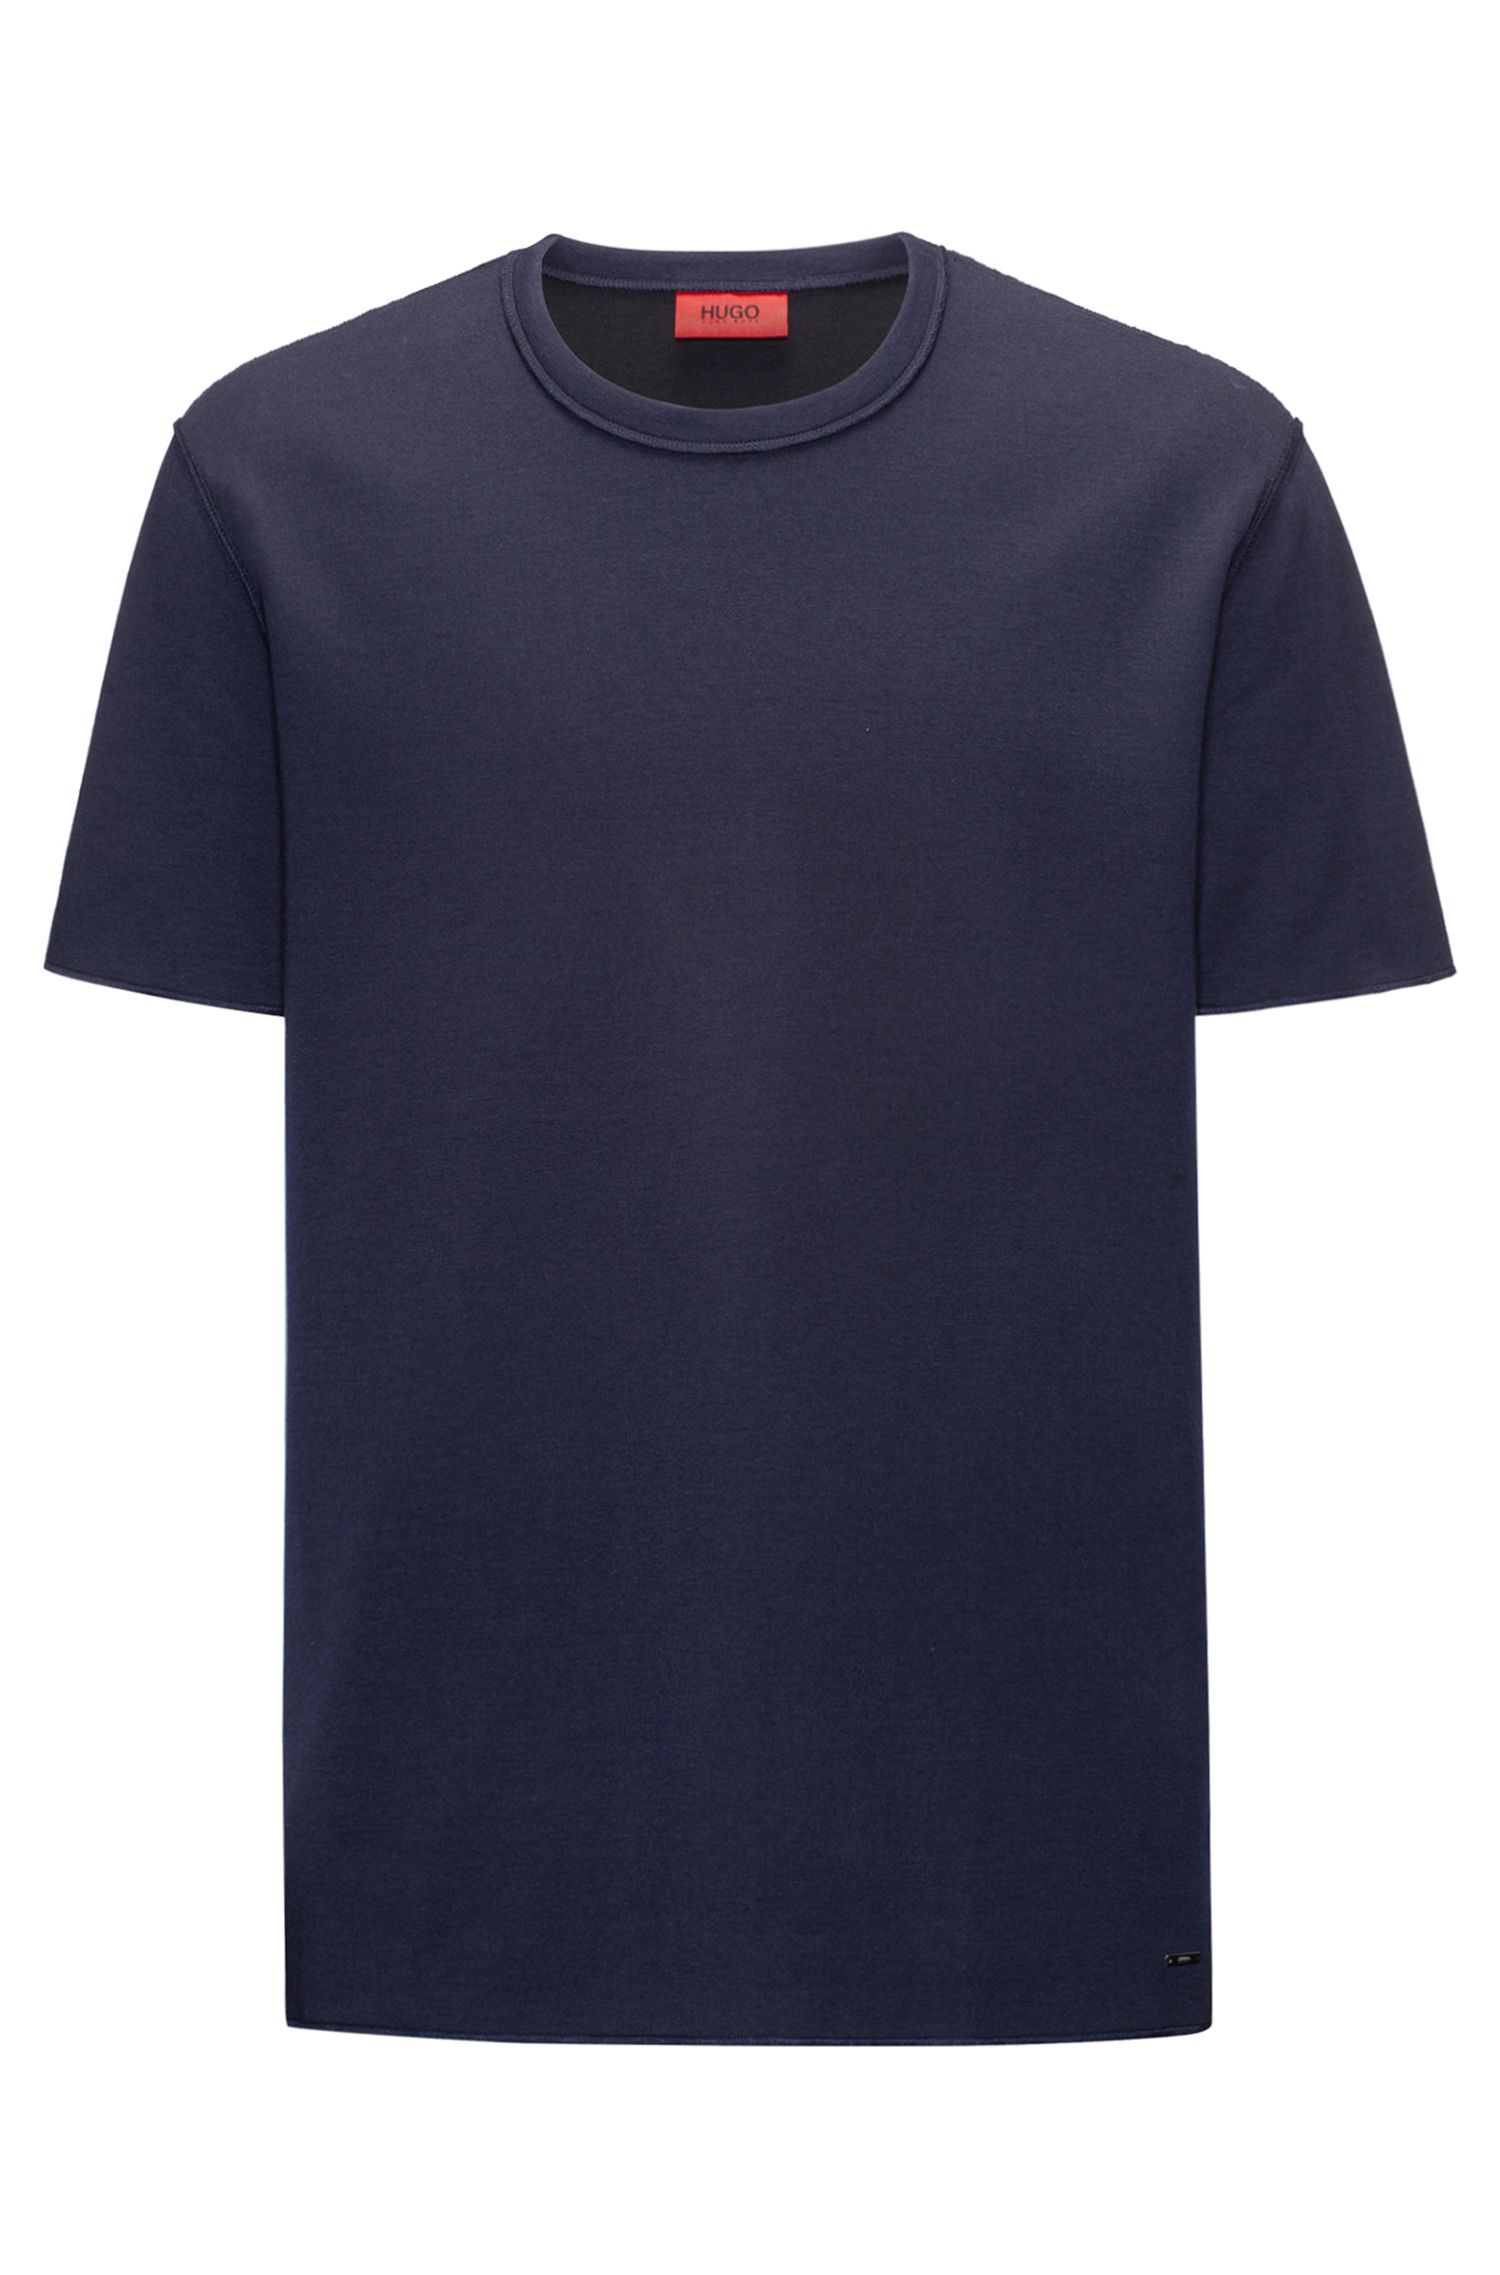 T-shirt Relaxed Fit en coton mélangé double face